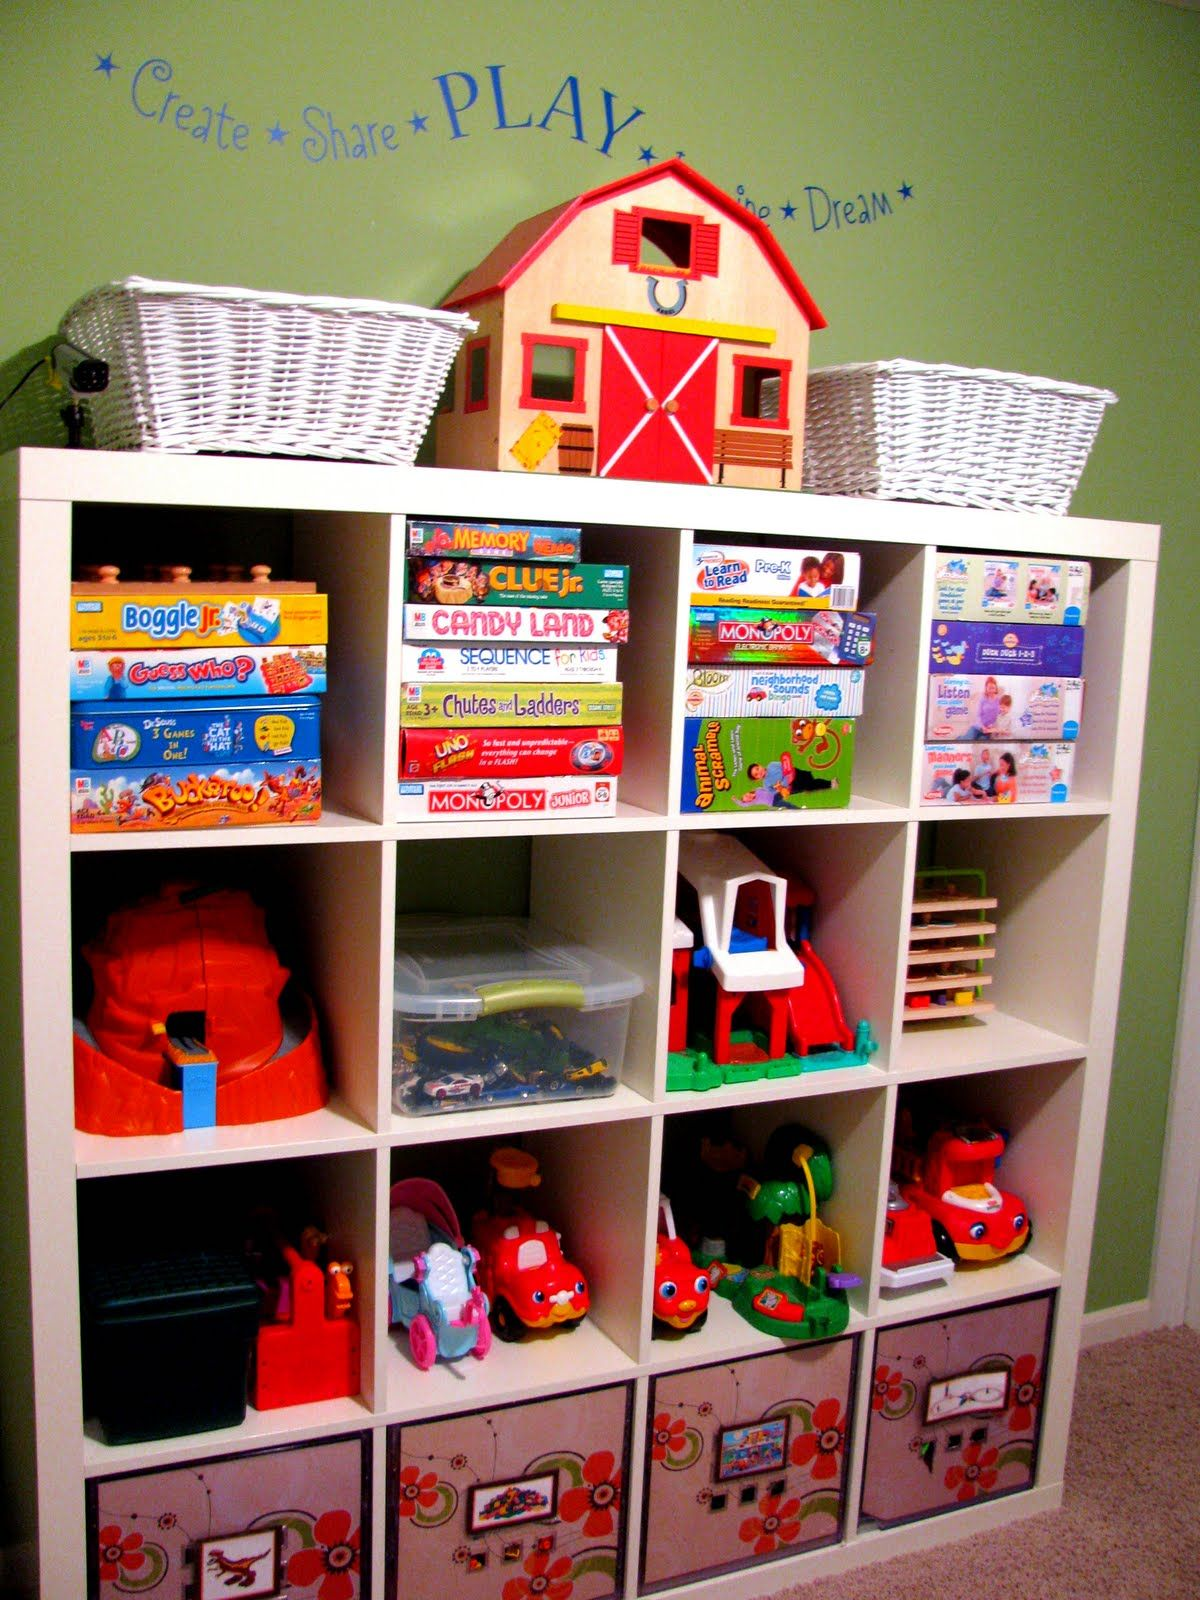 Iheart Organizing March Featured E Kids Perfect Play Haven Room Idea For The Boys